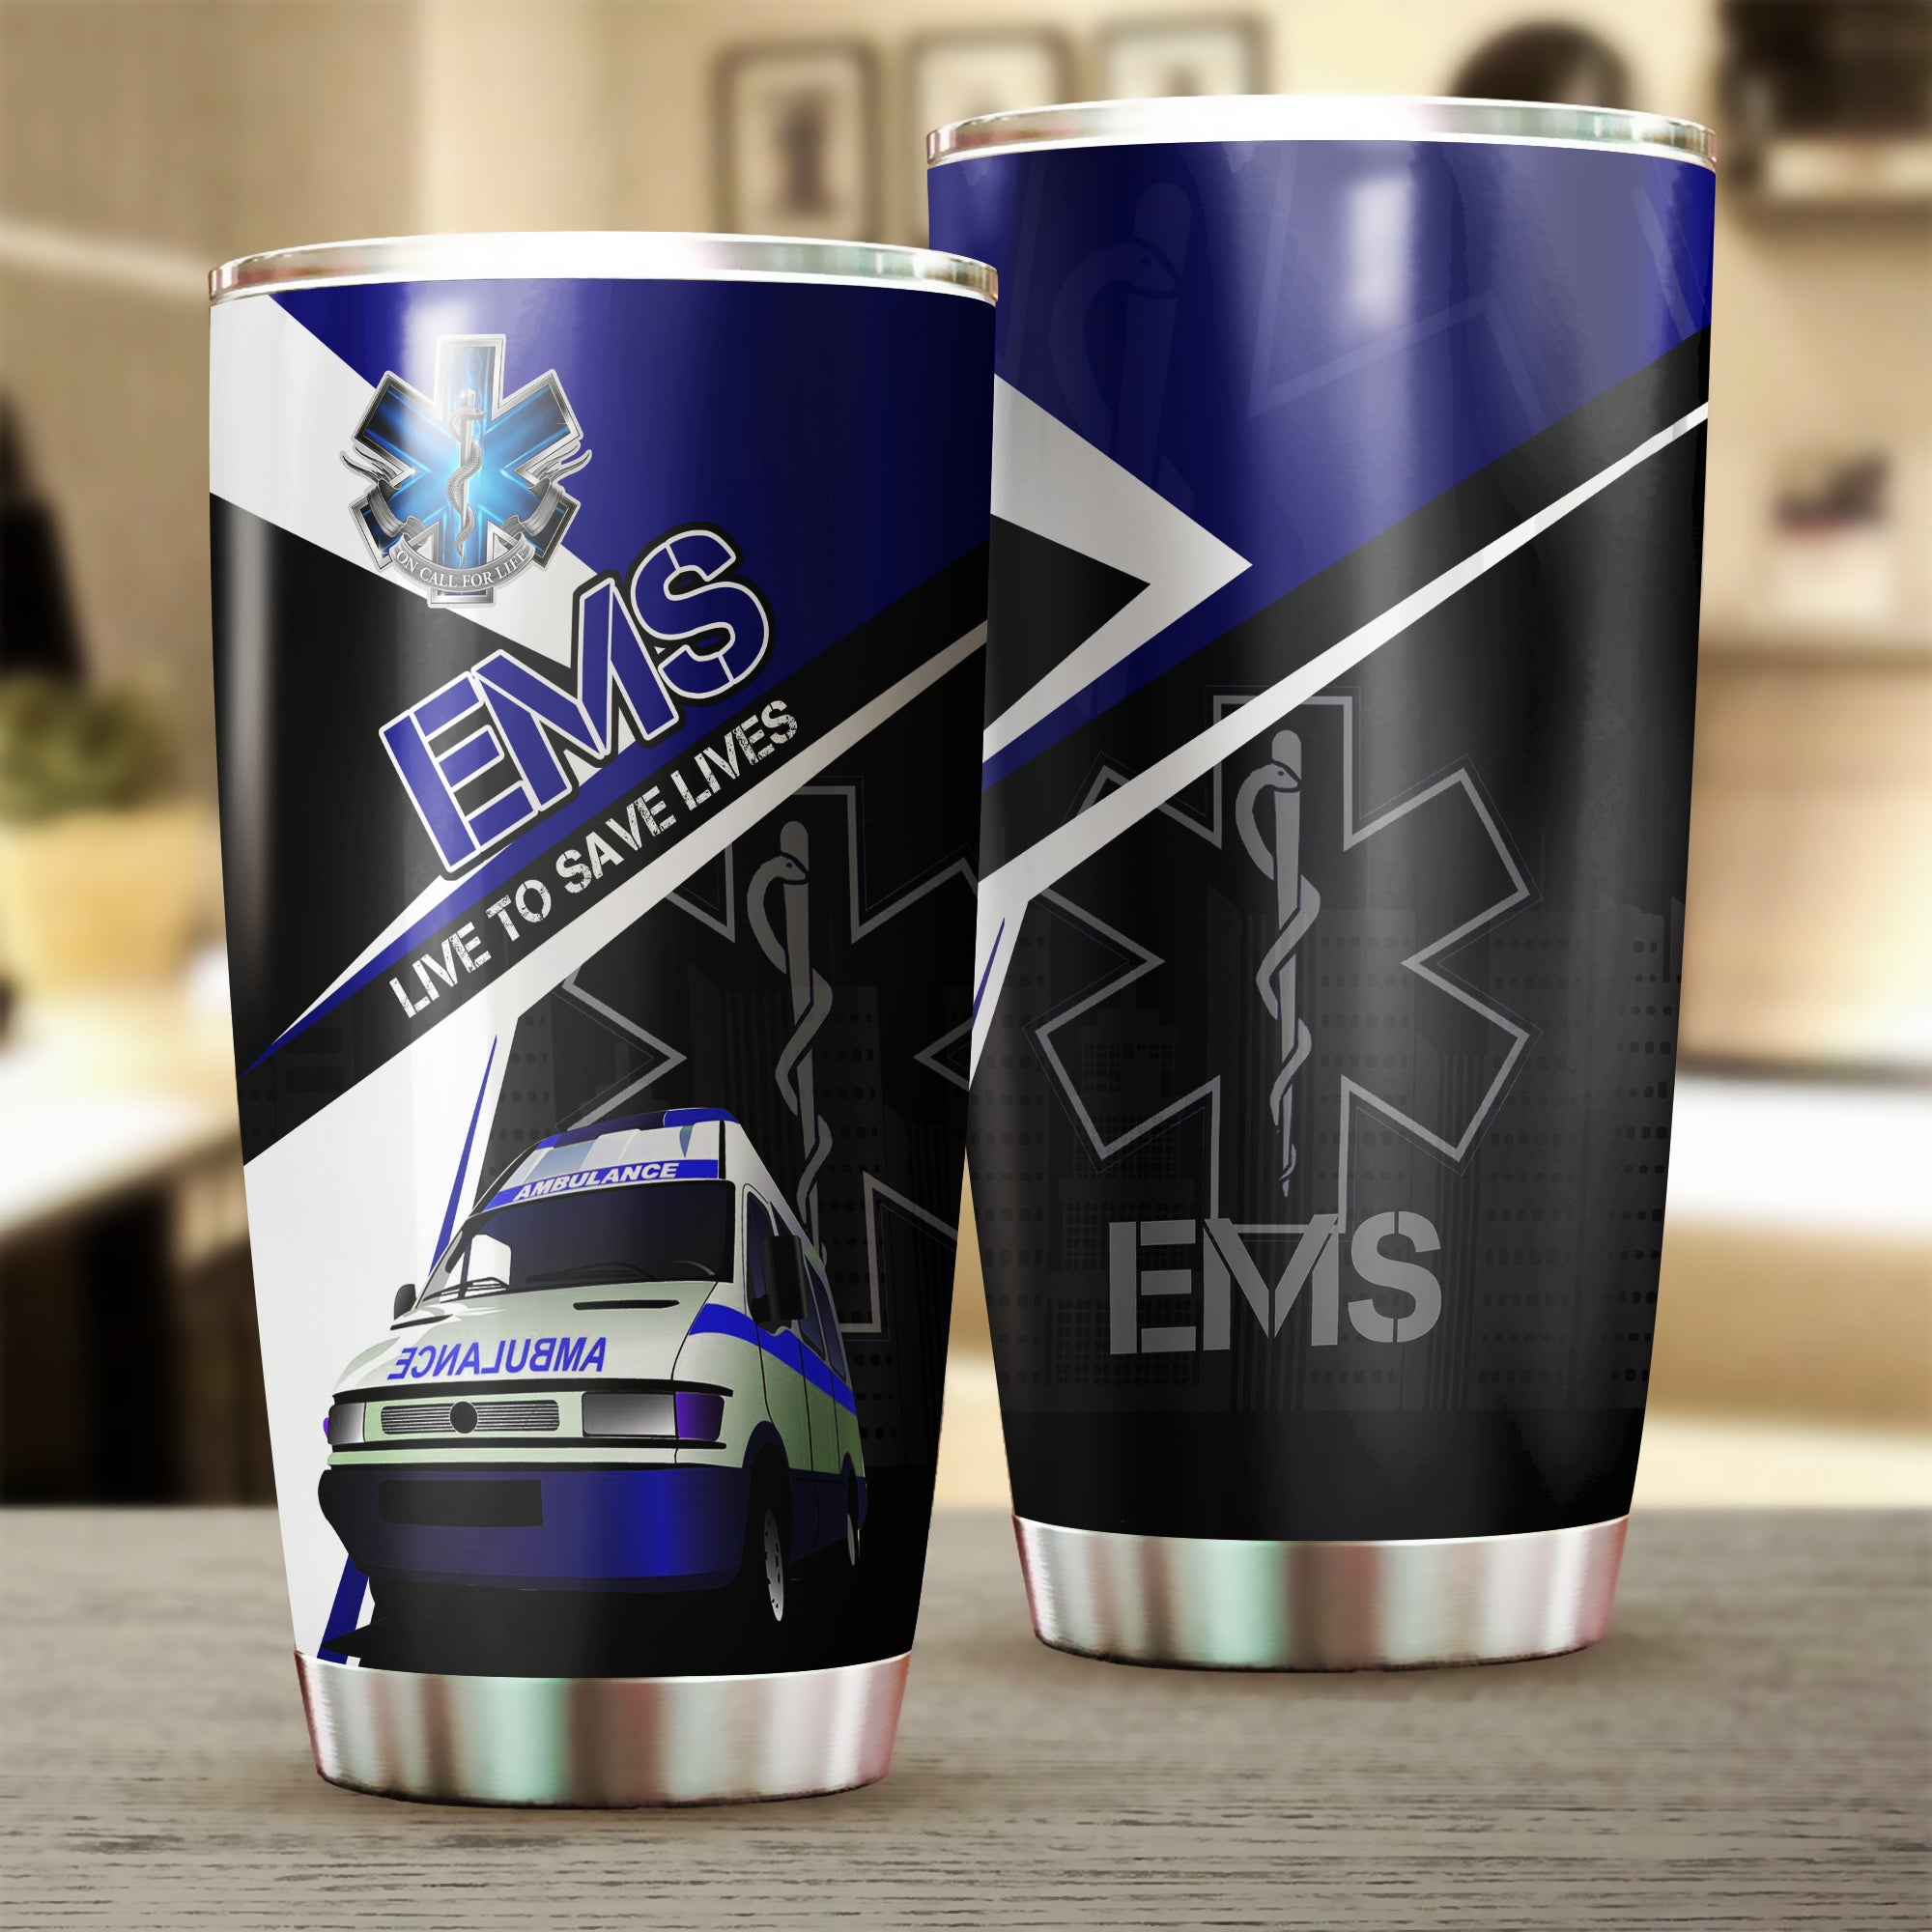 EMS Live To Save Lives Stainless Steel Tumbler nah010403